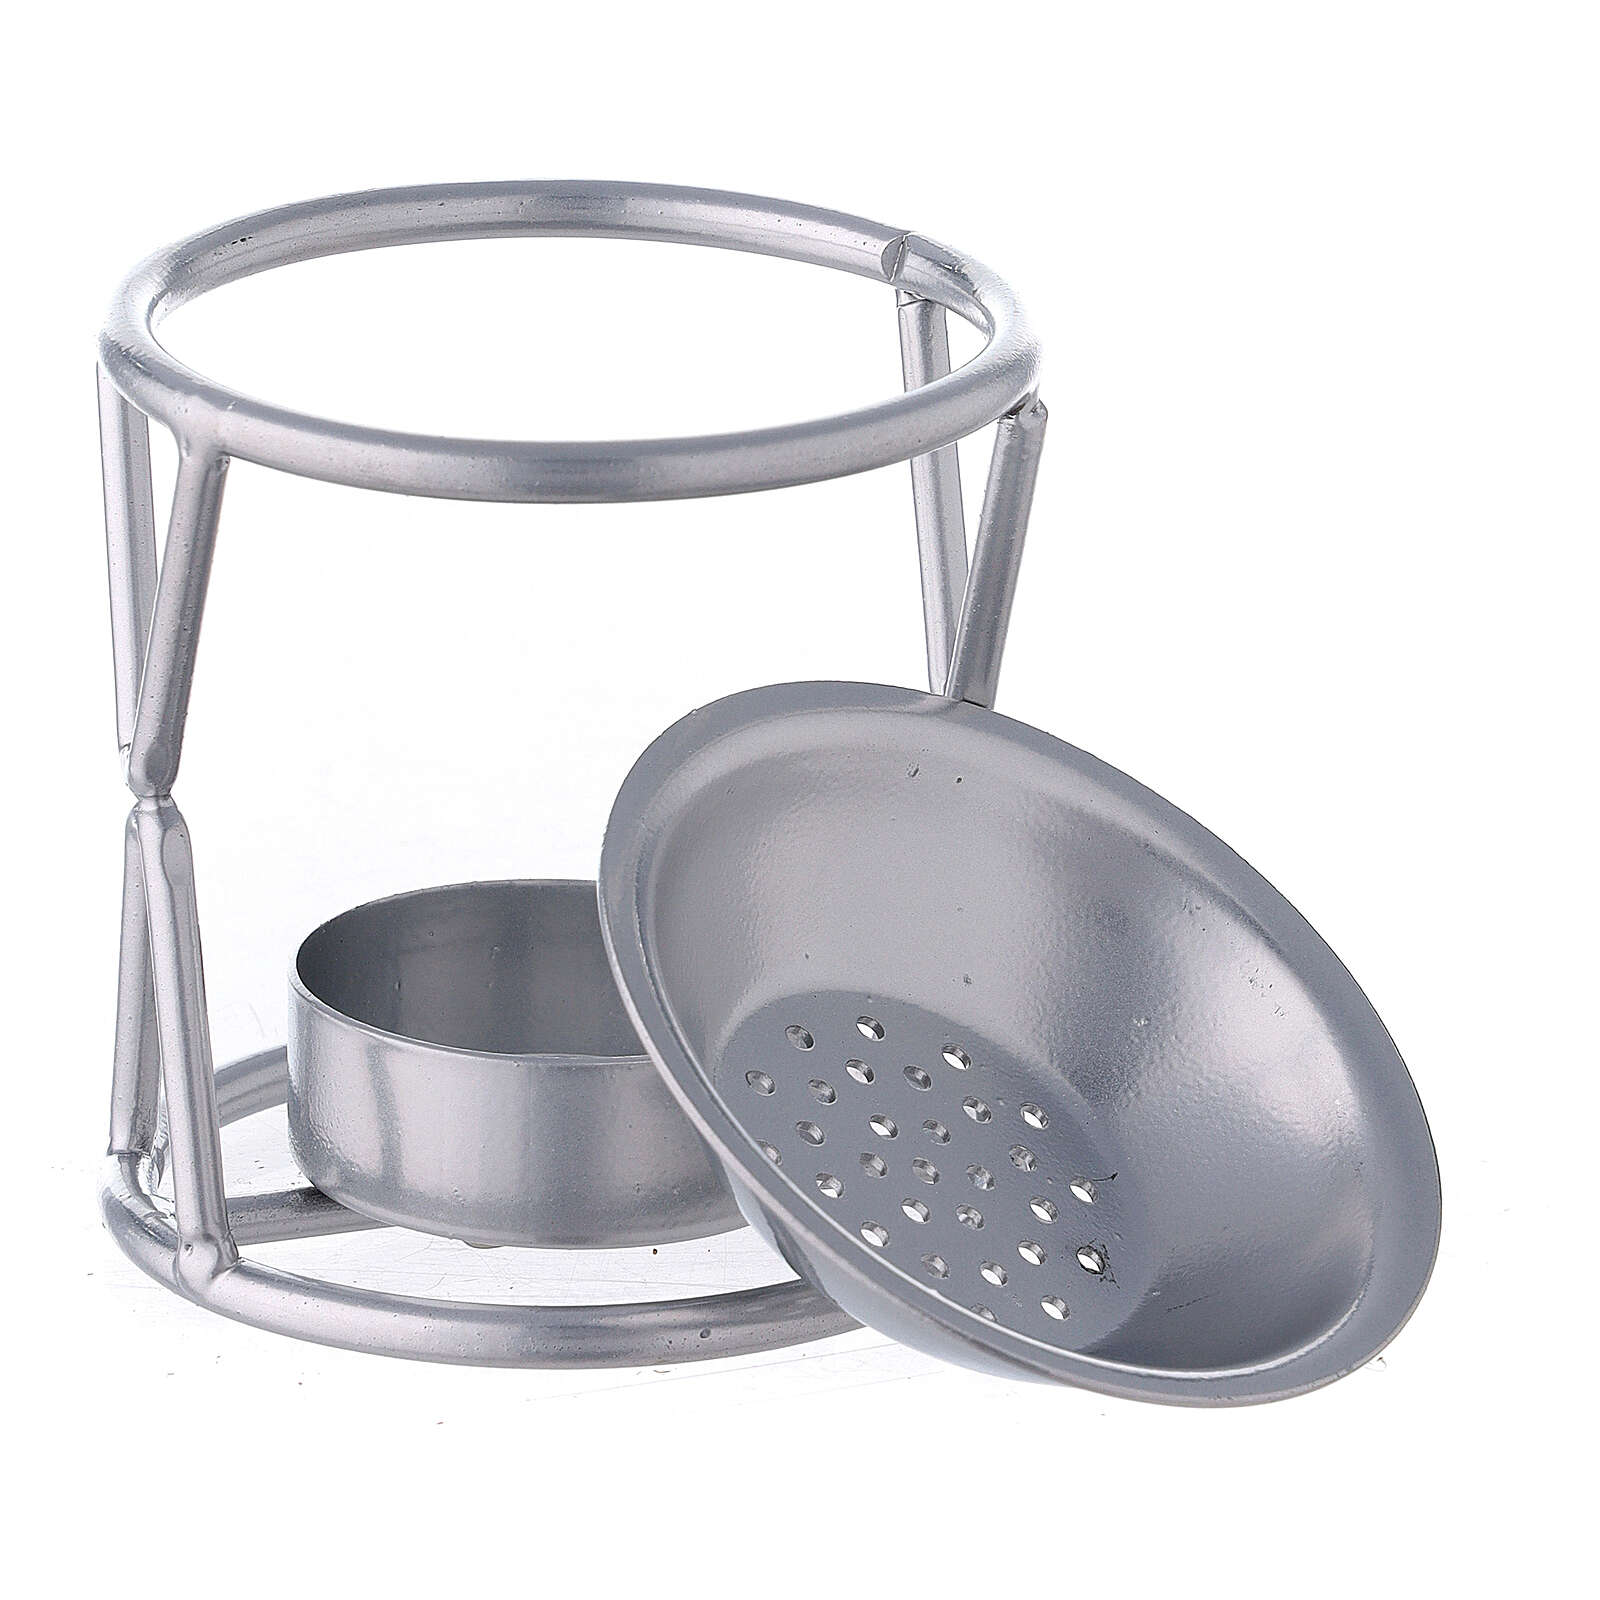 Candle incense burner X-shaped support in silver metal 3